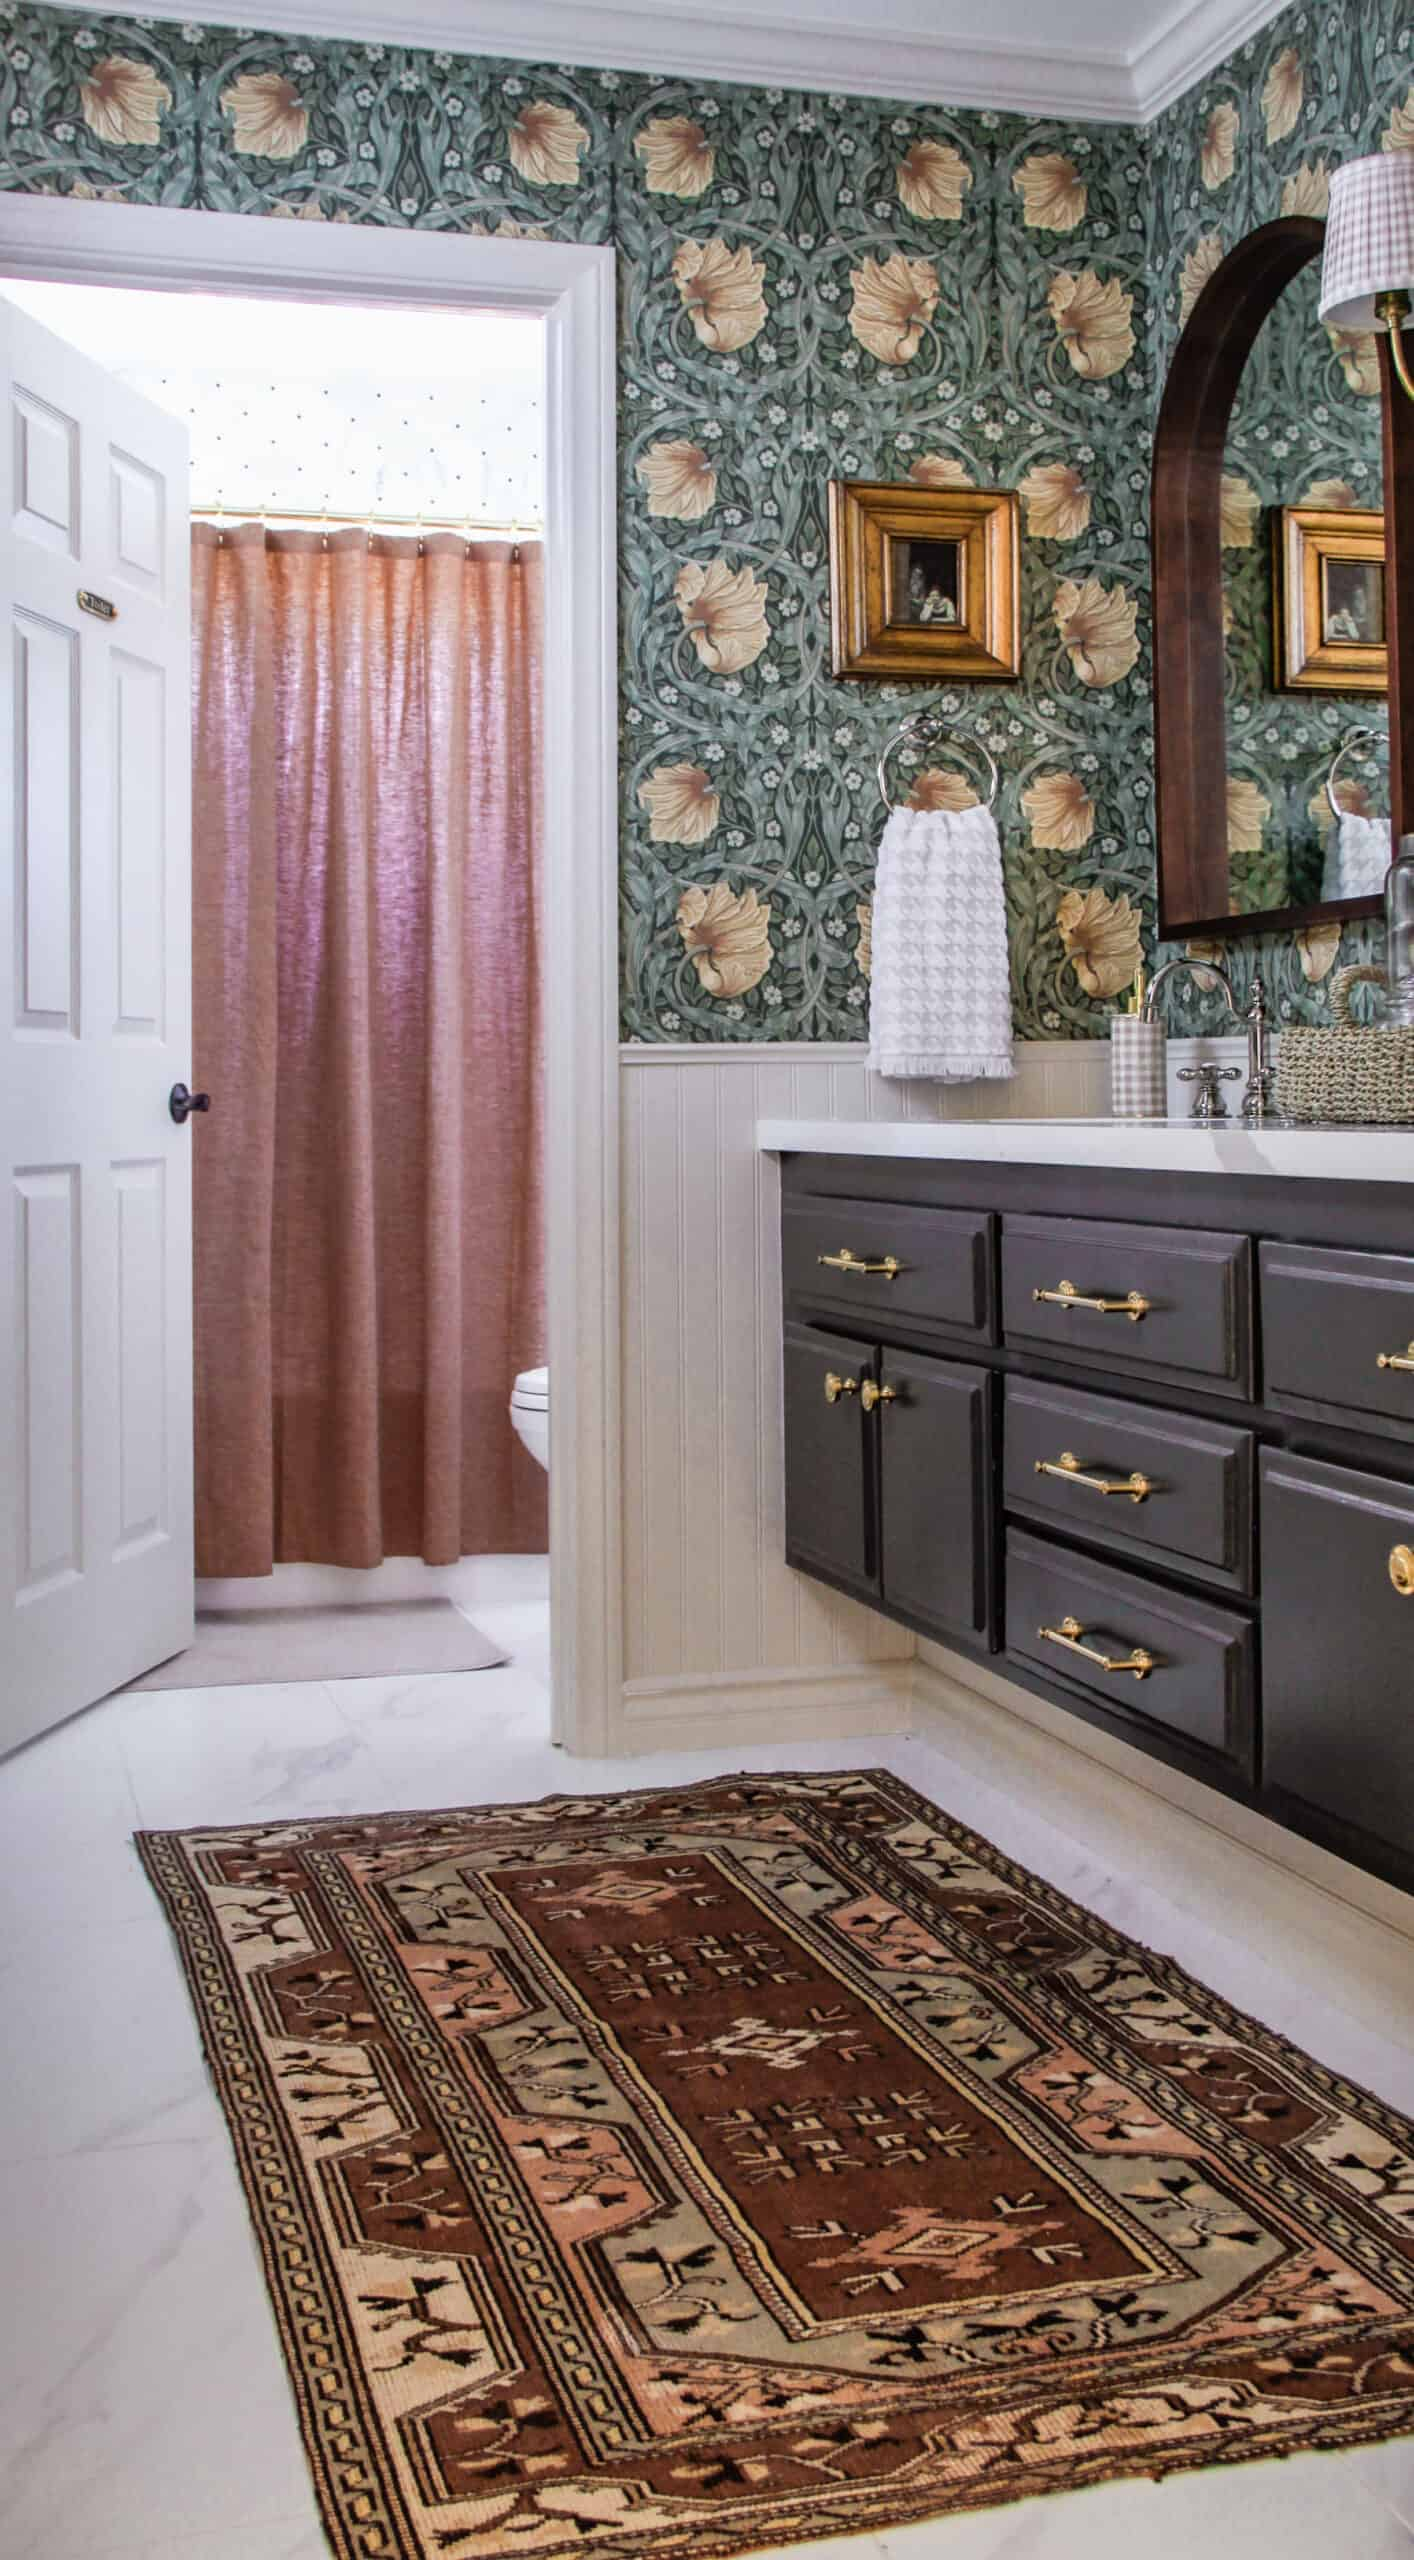 storybook style bathroom with vintage rug and floral wallpaper